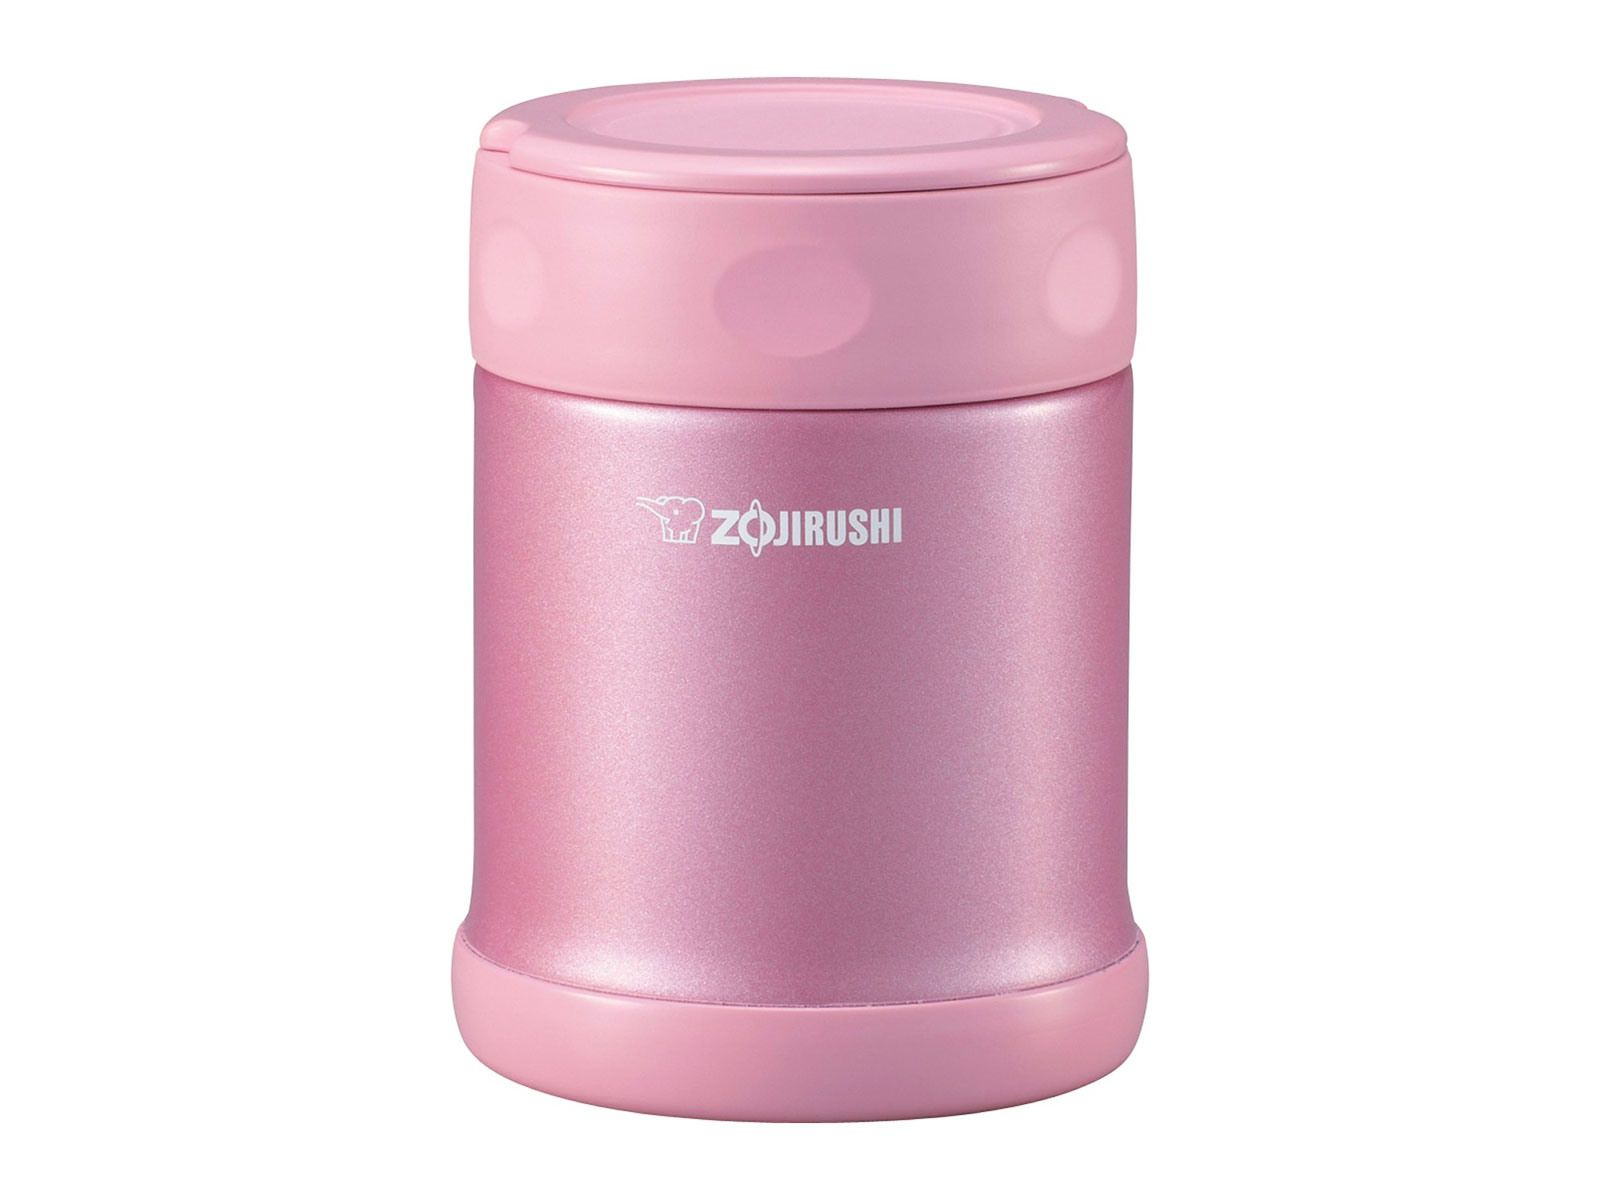 13 zojirushi containers and gadgets to brighten up your life food shiny pink food jar forumfinder Image collections